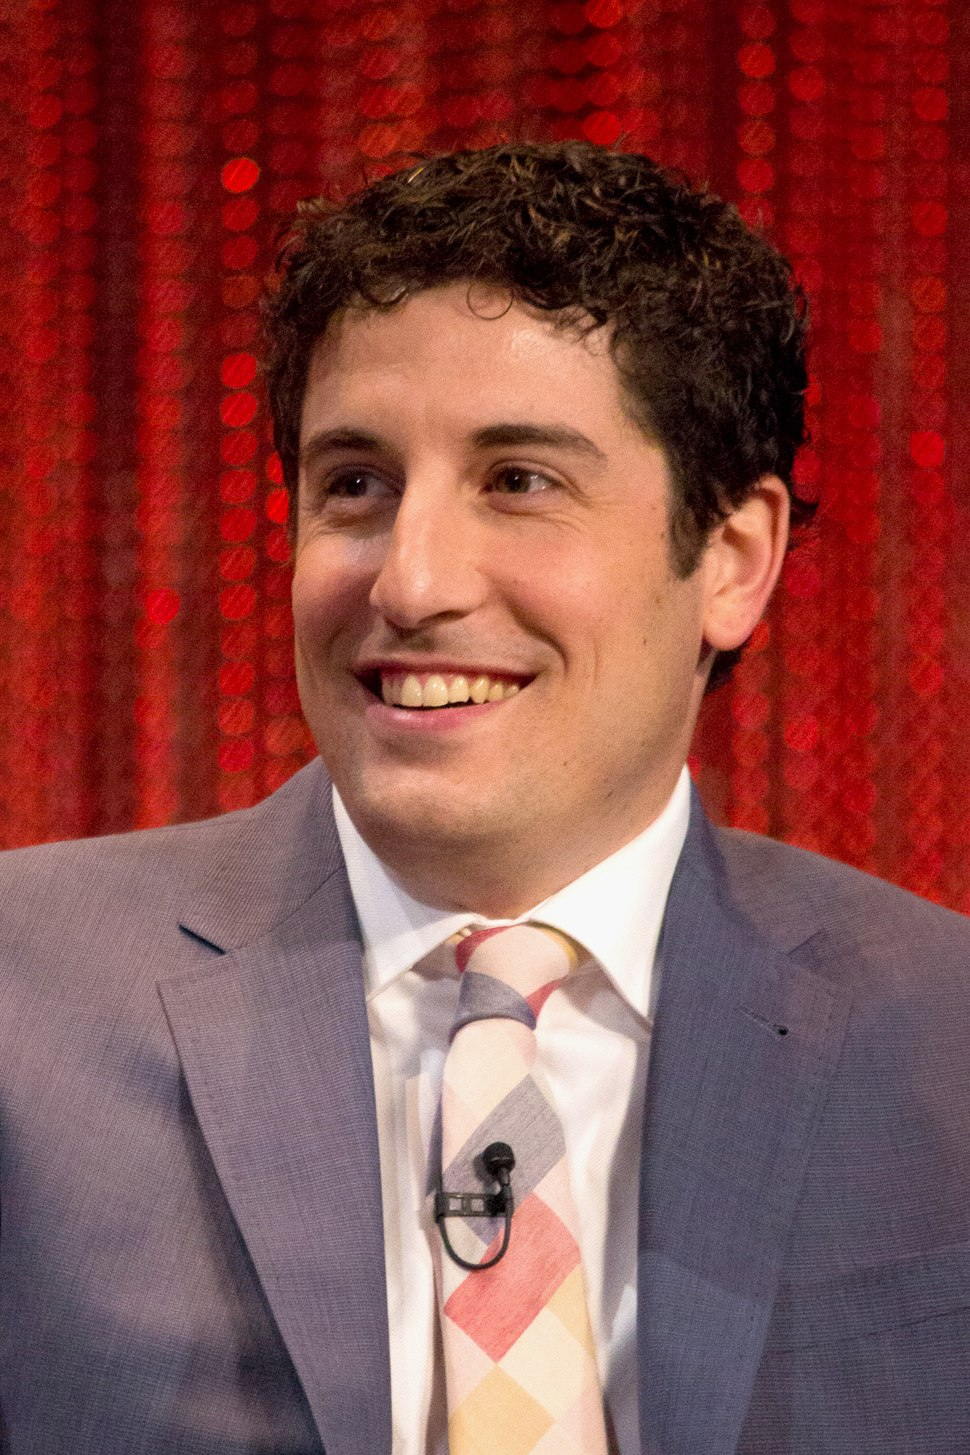 Jason Biggs at Paley Fest Orange Is The New Black